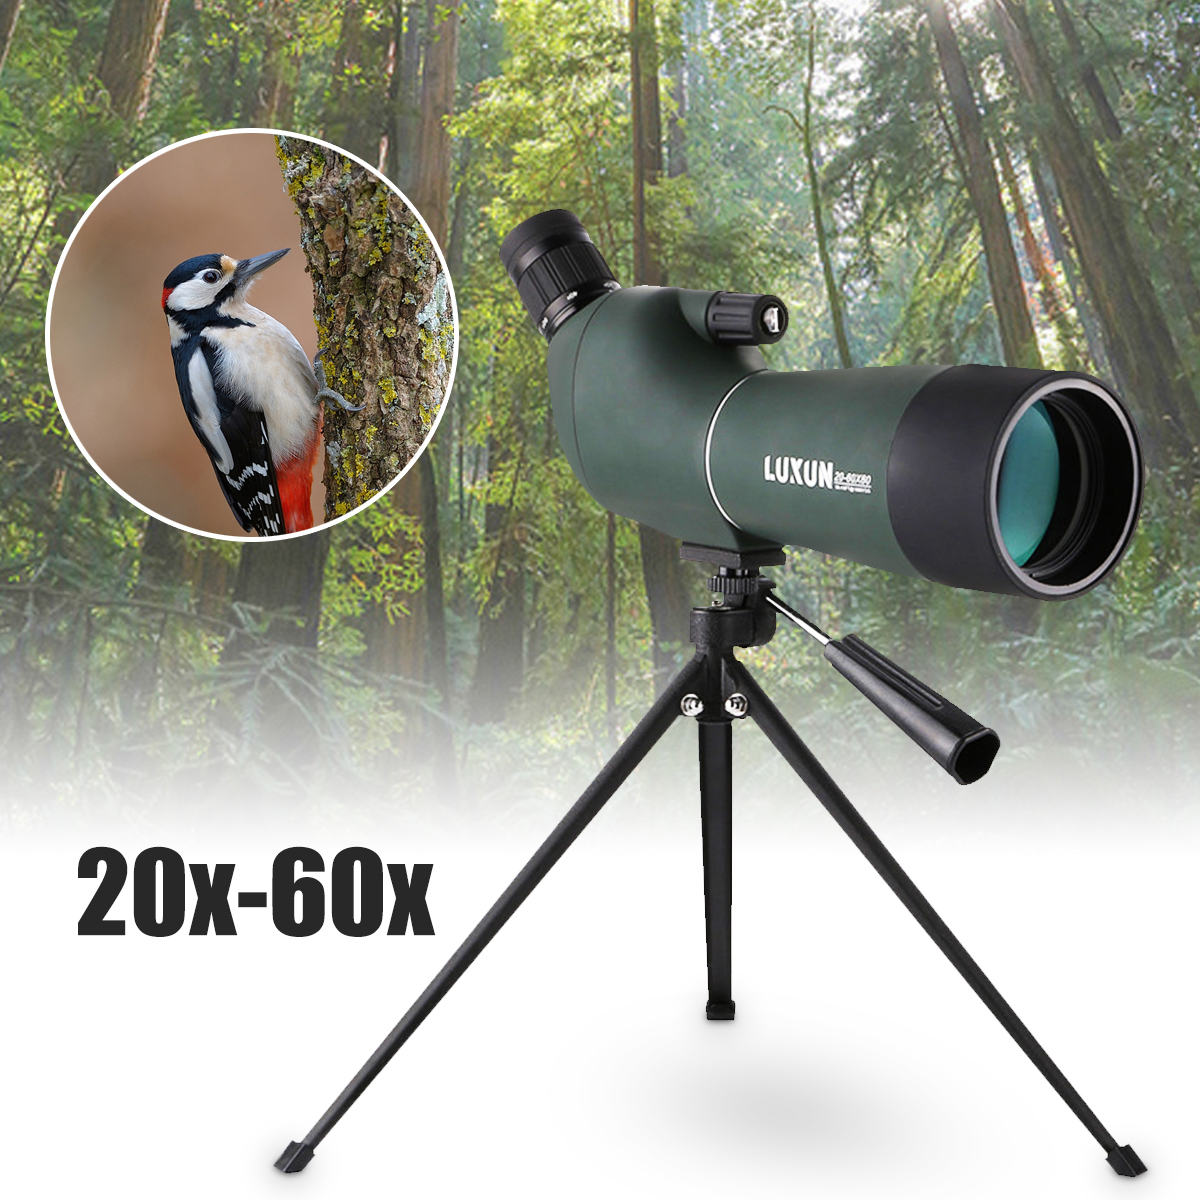 20-60x60mm Night Vision Spotting Scope Telescope Zoom 60mm Waterproof Birdwatch Hunting HD Monocular Tripod Outdoor Camping 15 45x60 spotting scope waterproof telescope 60mm 15 45x zoom birdwatch long range hunting monocular with tripod mount href